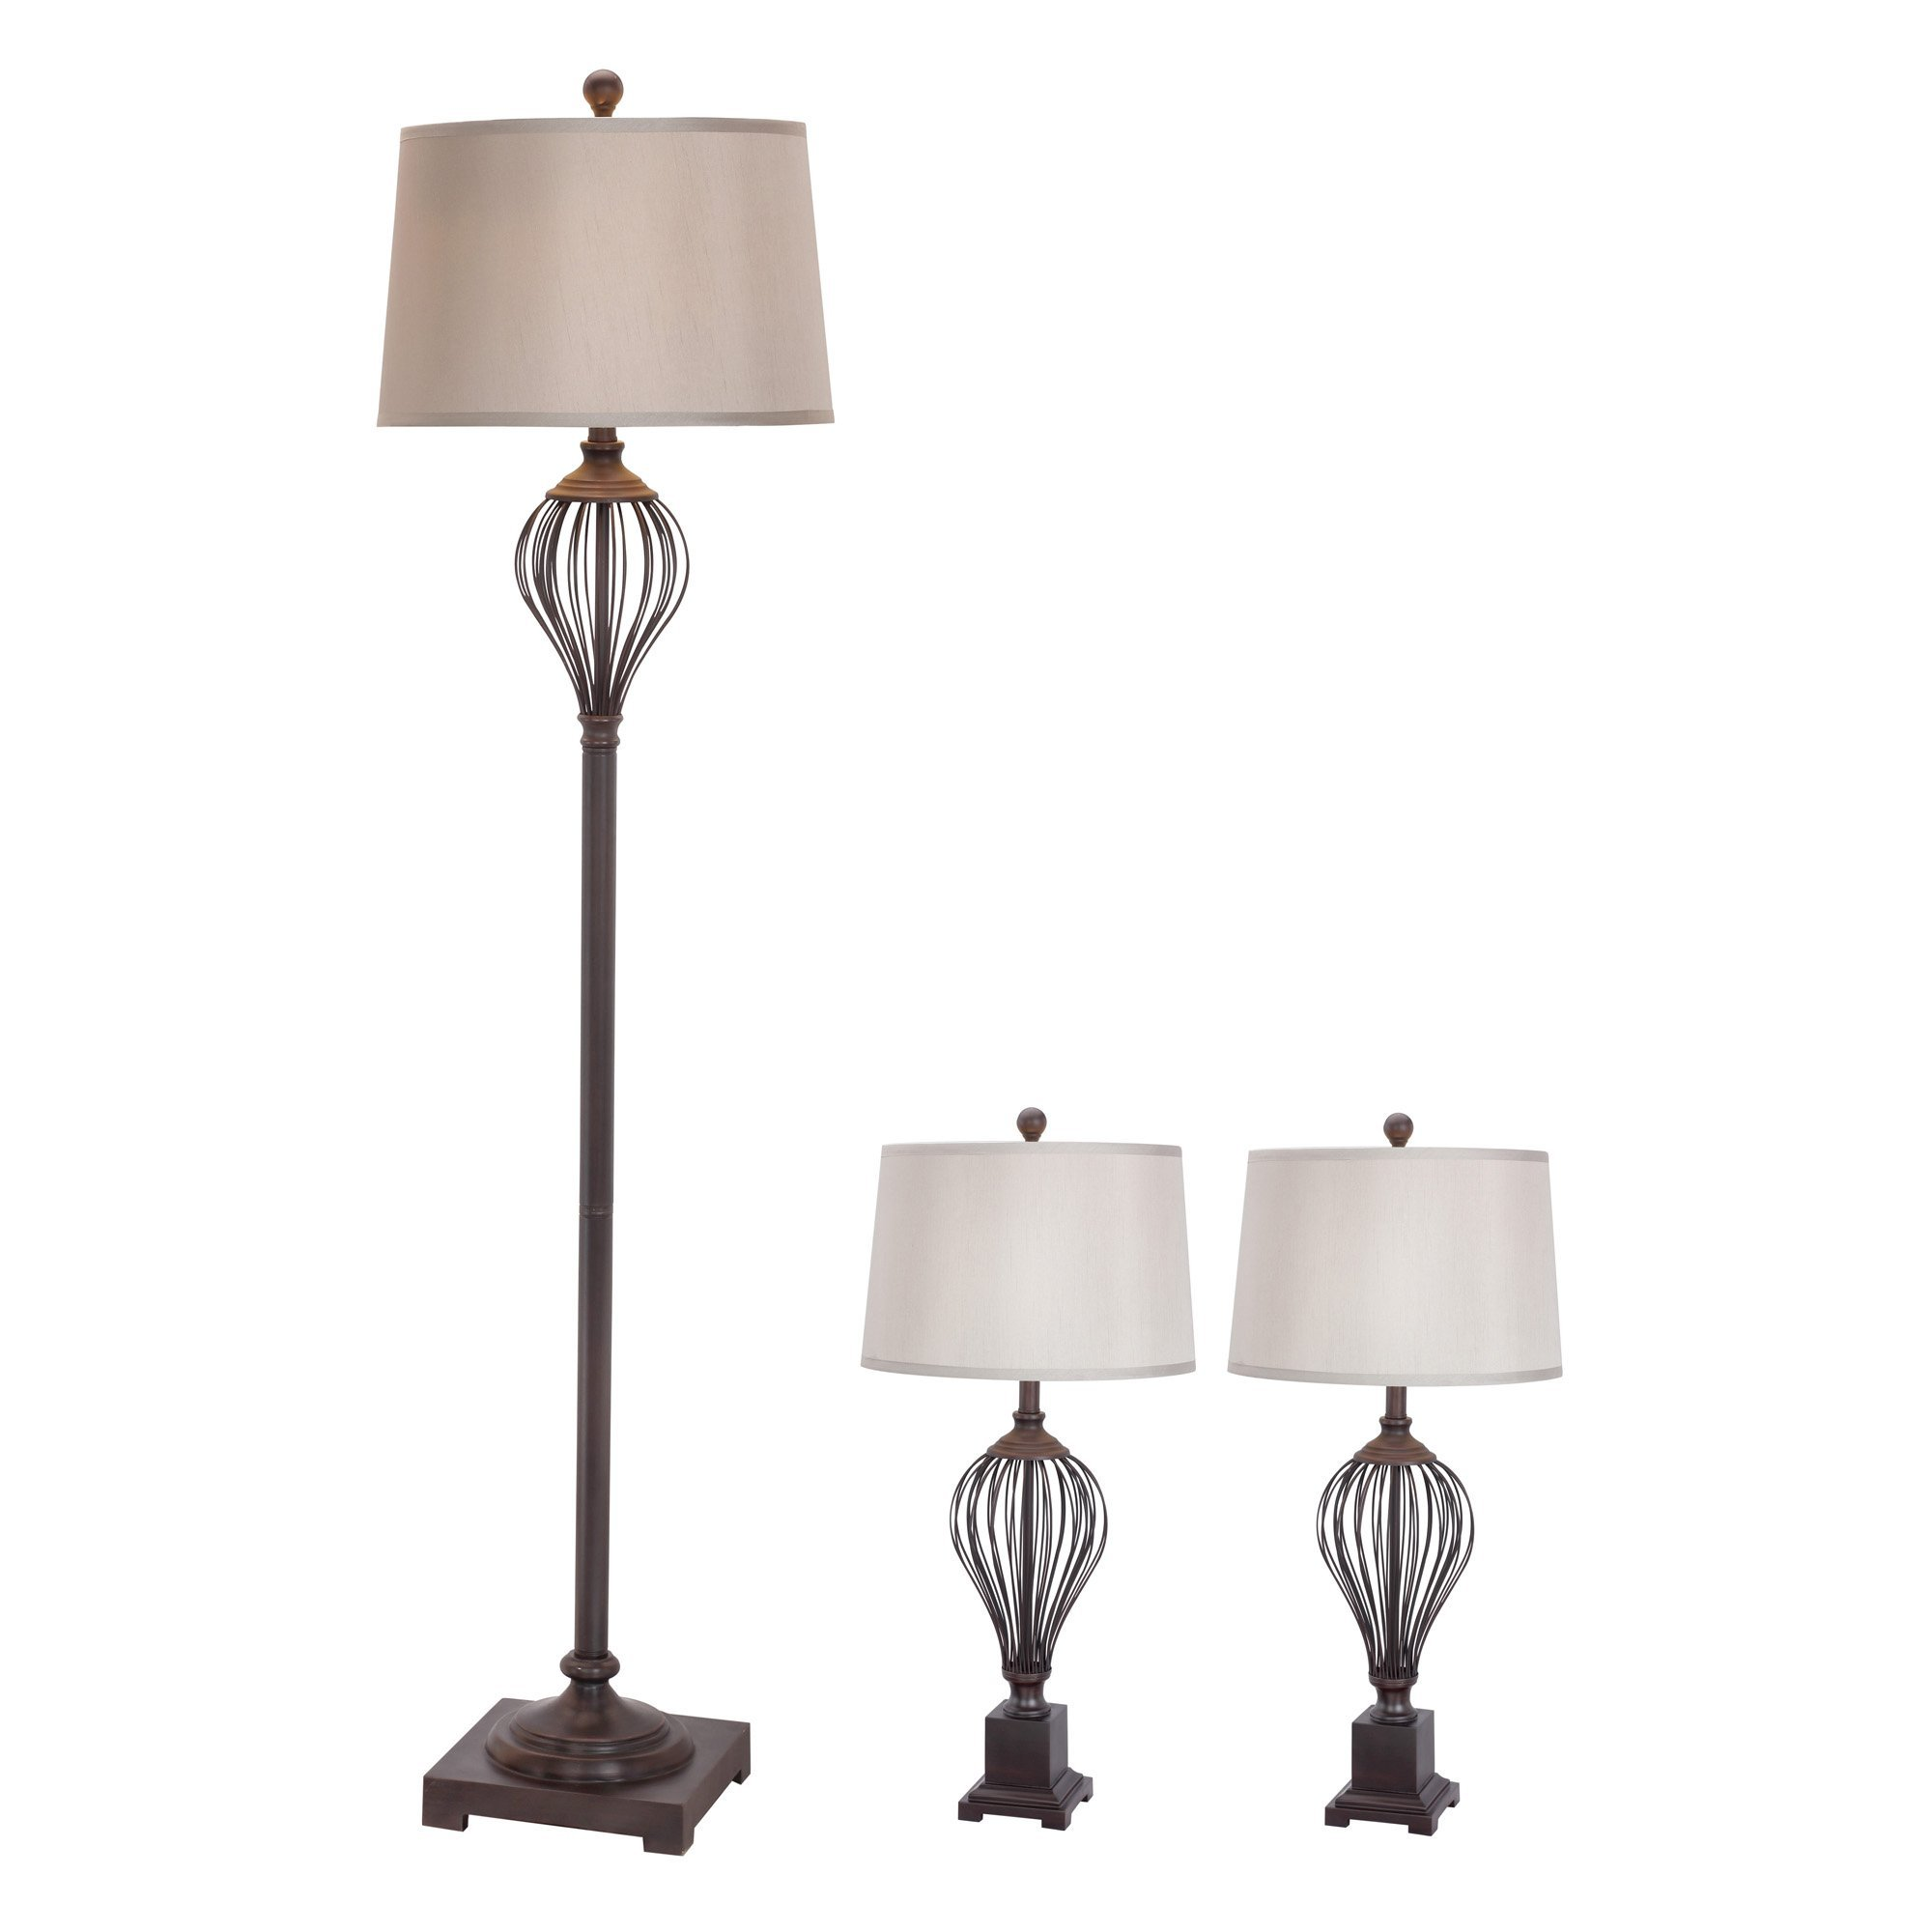 Fangio Lighting W-3857ORB Metal Wire Lamp Set, Oil Rubbed Bronze